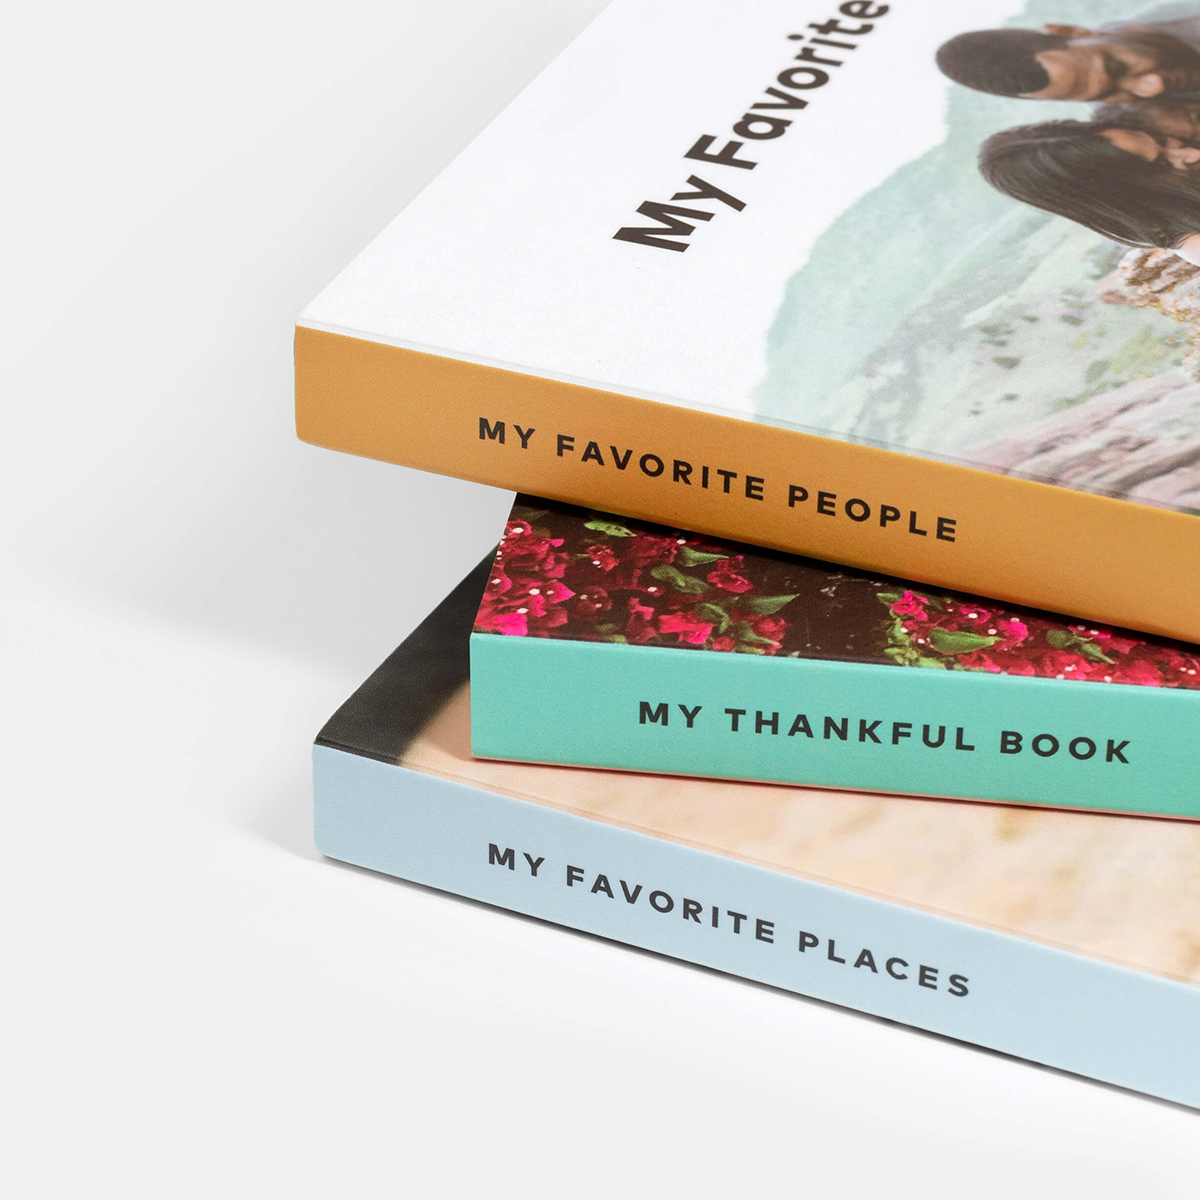 Three baby board books with three different themes stacked askew